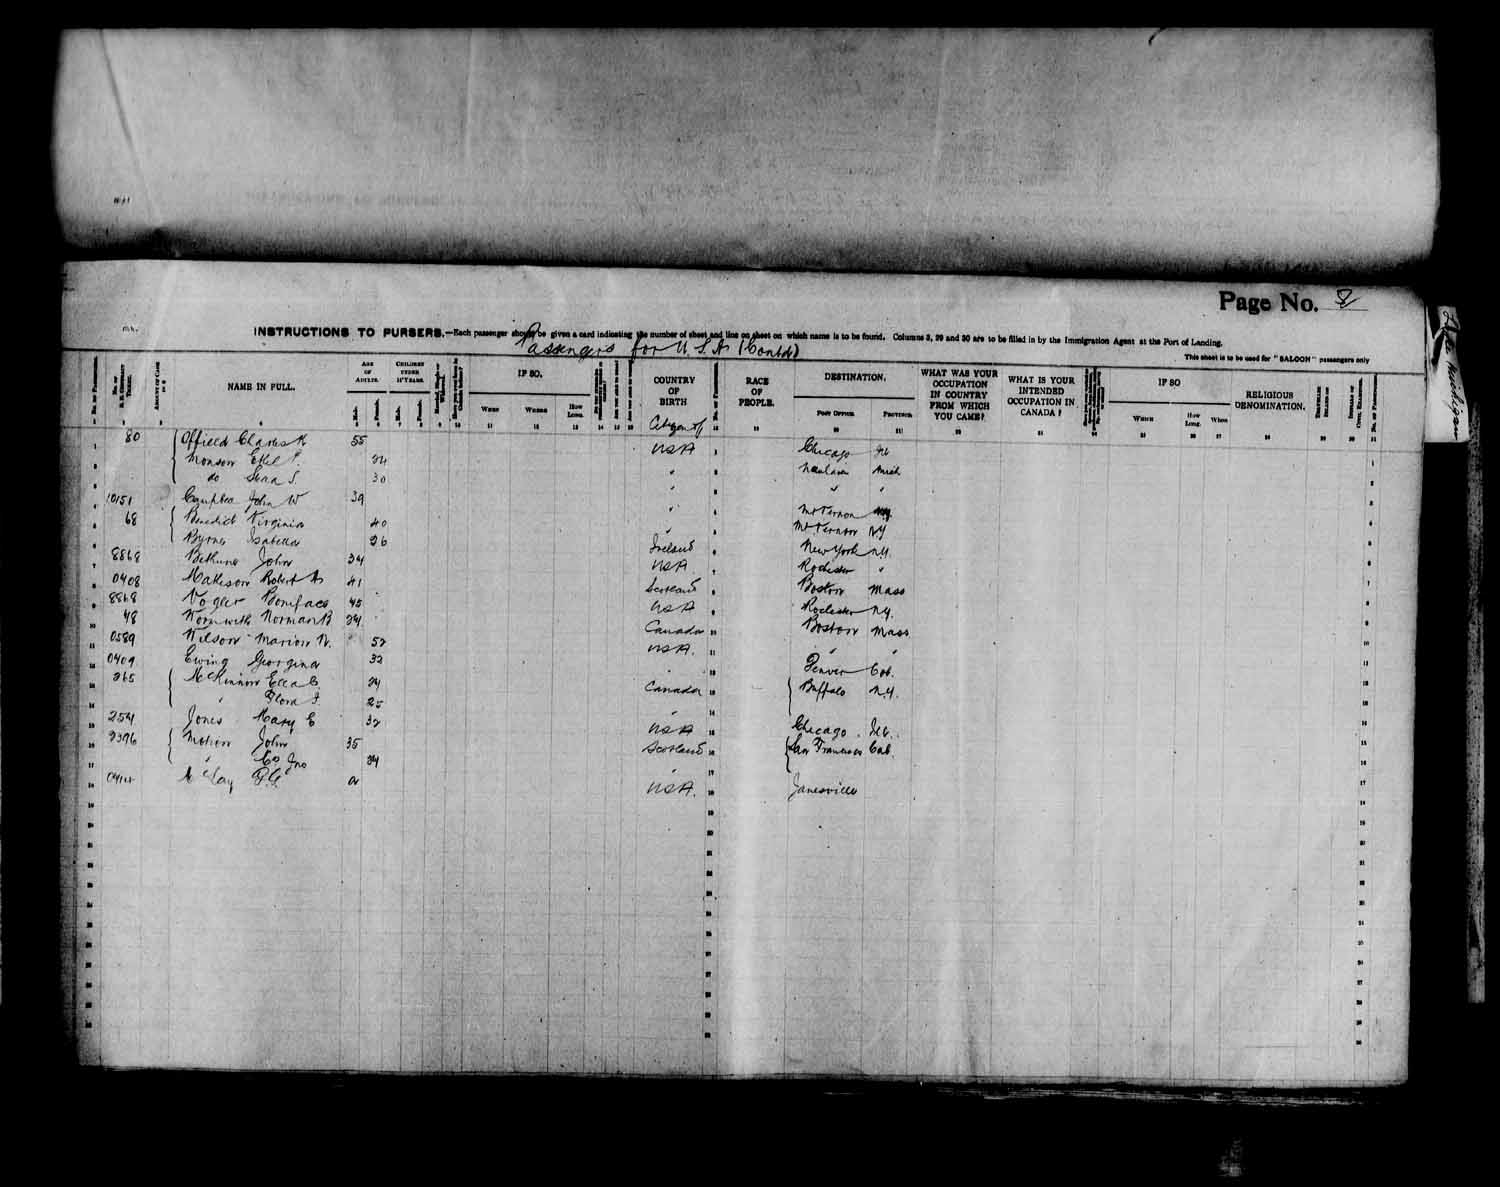 Digitized page of Passenger Lists for Image No.: e003566511